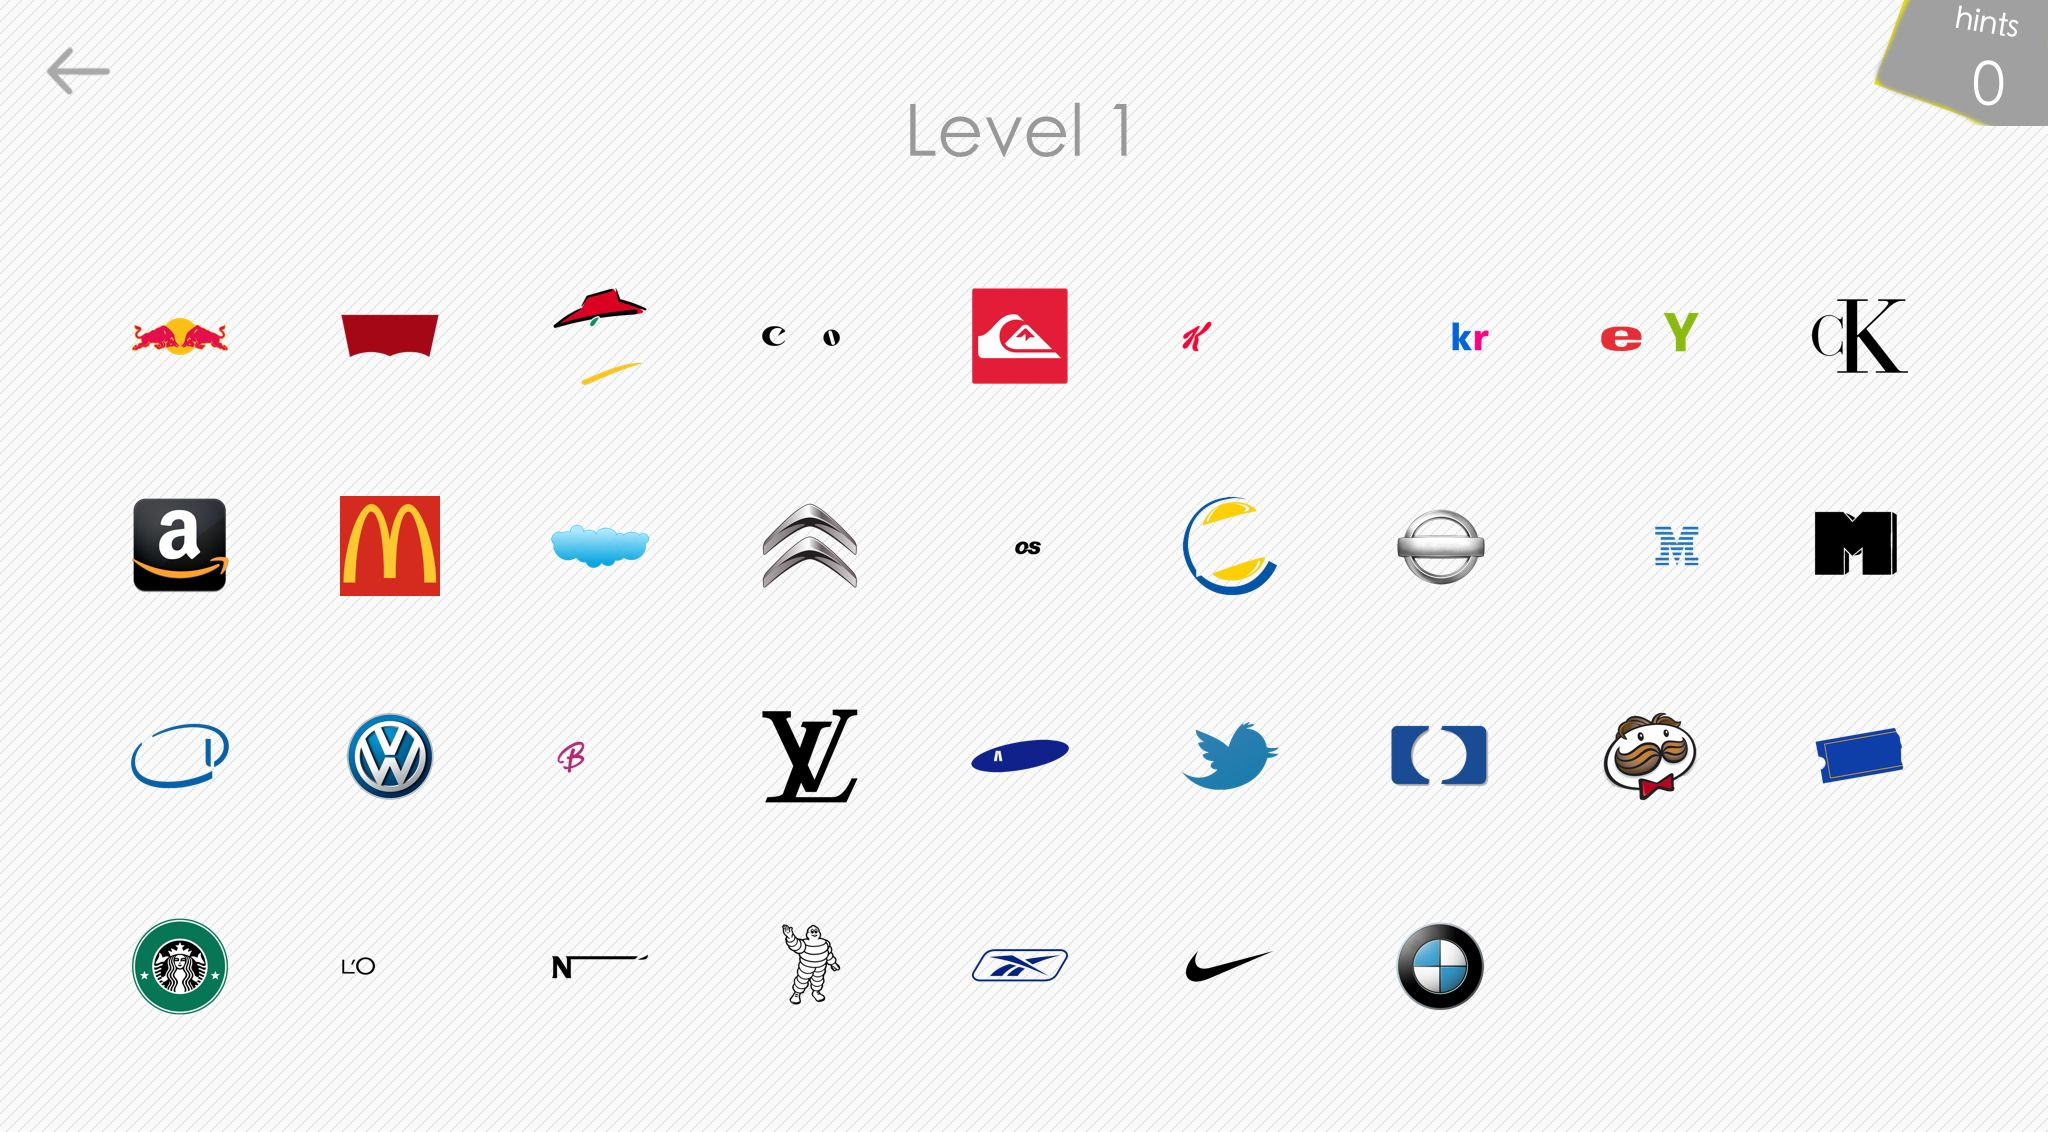 Think You Re Good At Recognizing Logos Try This Fun And Challenging App Called Logos Quiz To Find Out Guess The Name Logo Quiz Guess The Logo Logo Quiz Games